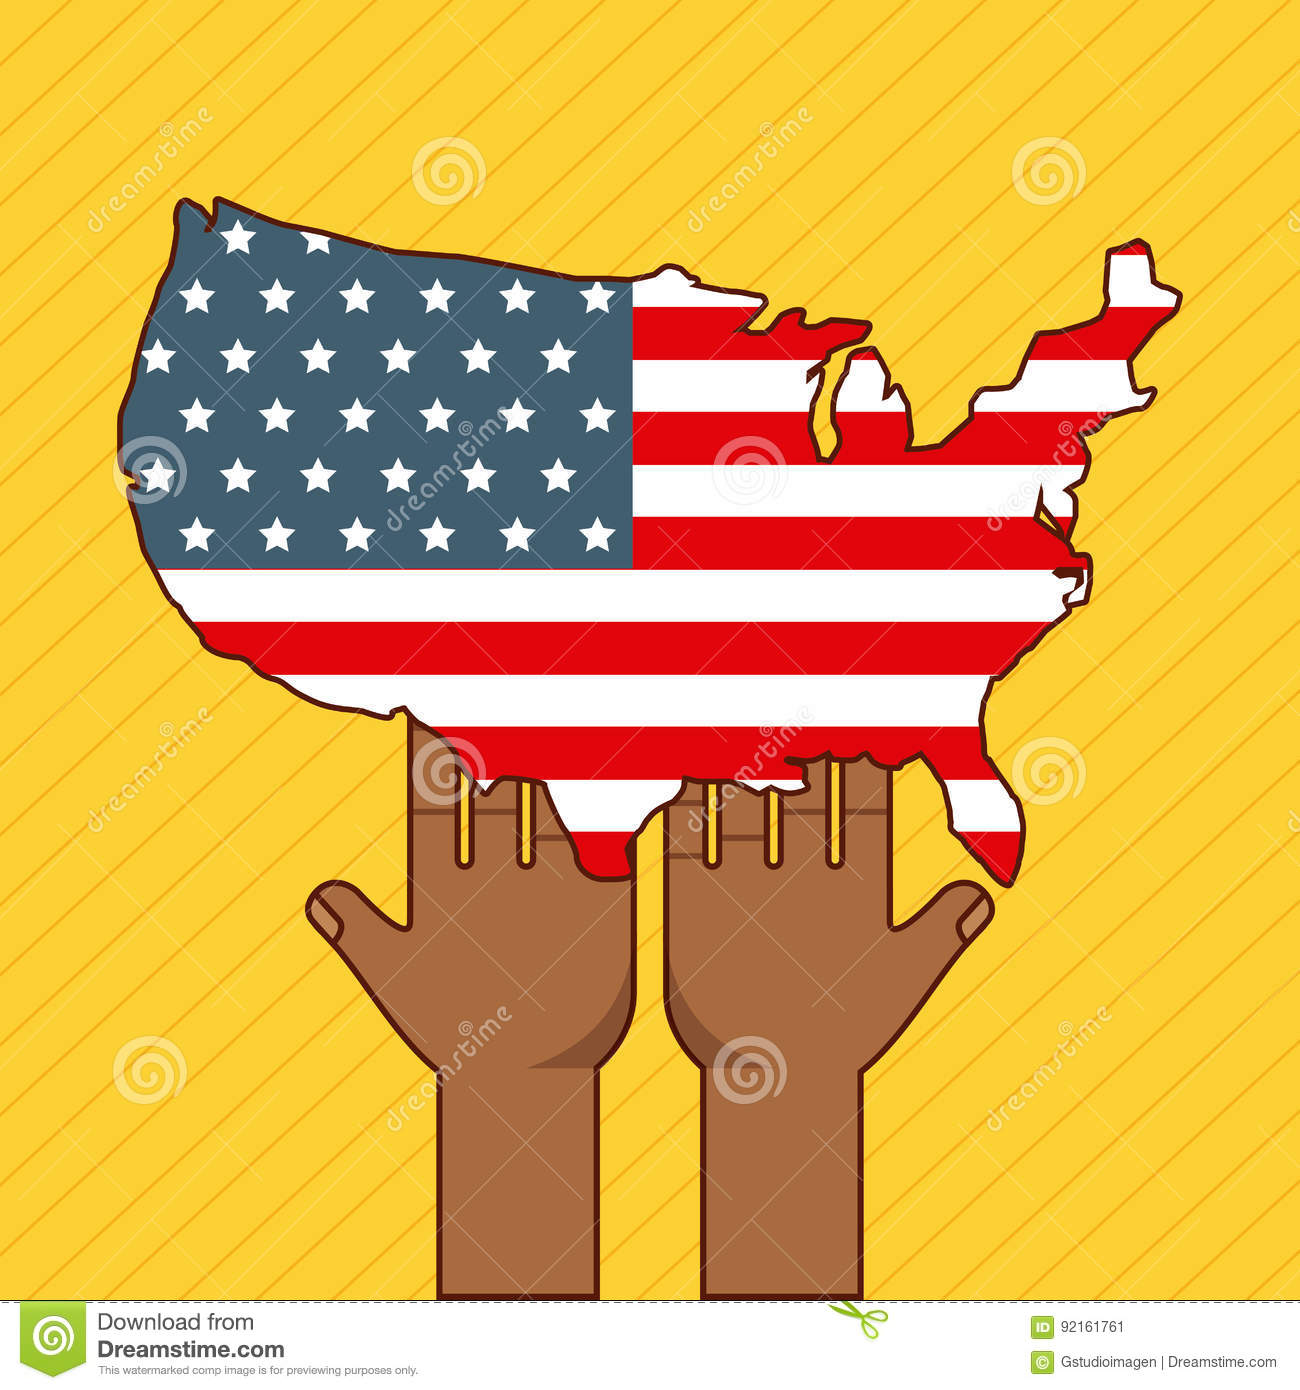 the concept of race in the united states politics Gender and electoral politics in the united states  race in american political thought by  the race concept and race relations have been central themes in.